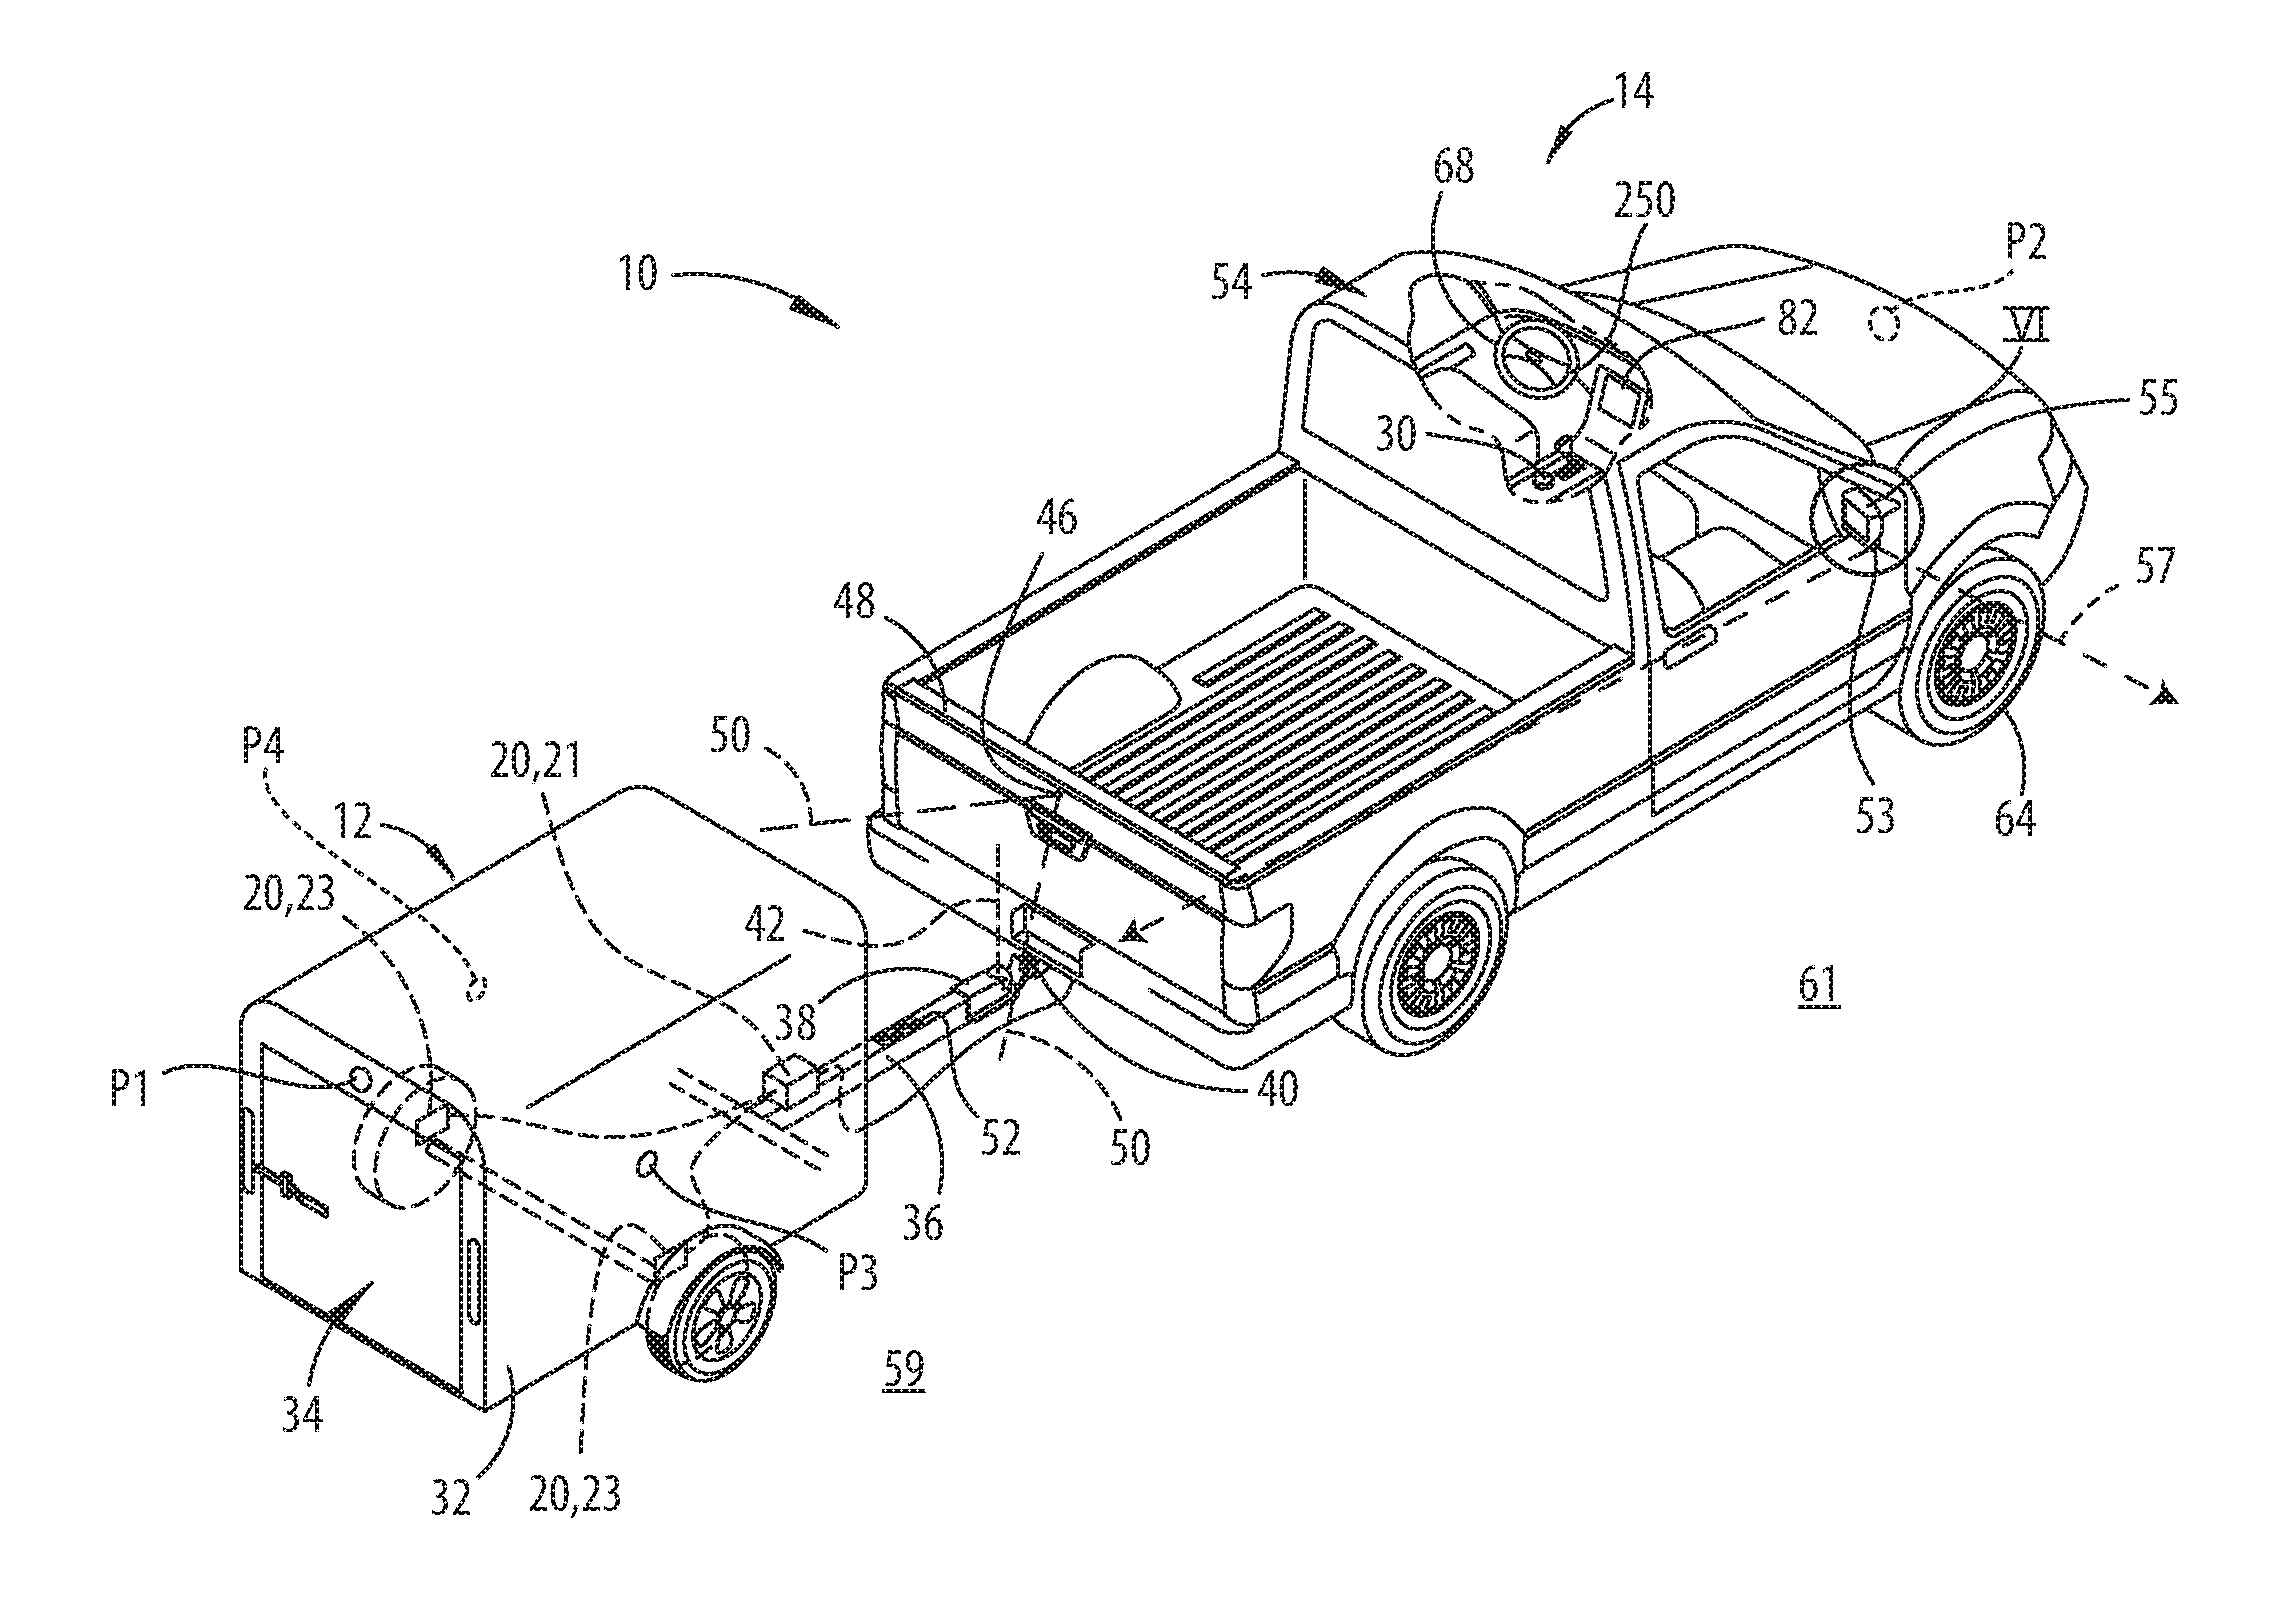 patent us 9 836 060 b2 F150 Body Parts Diagram first claim